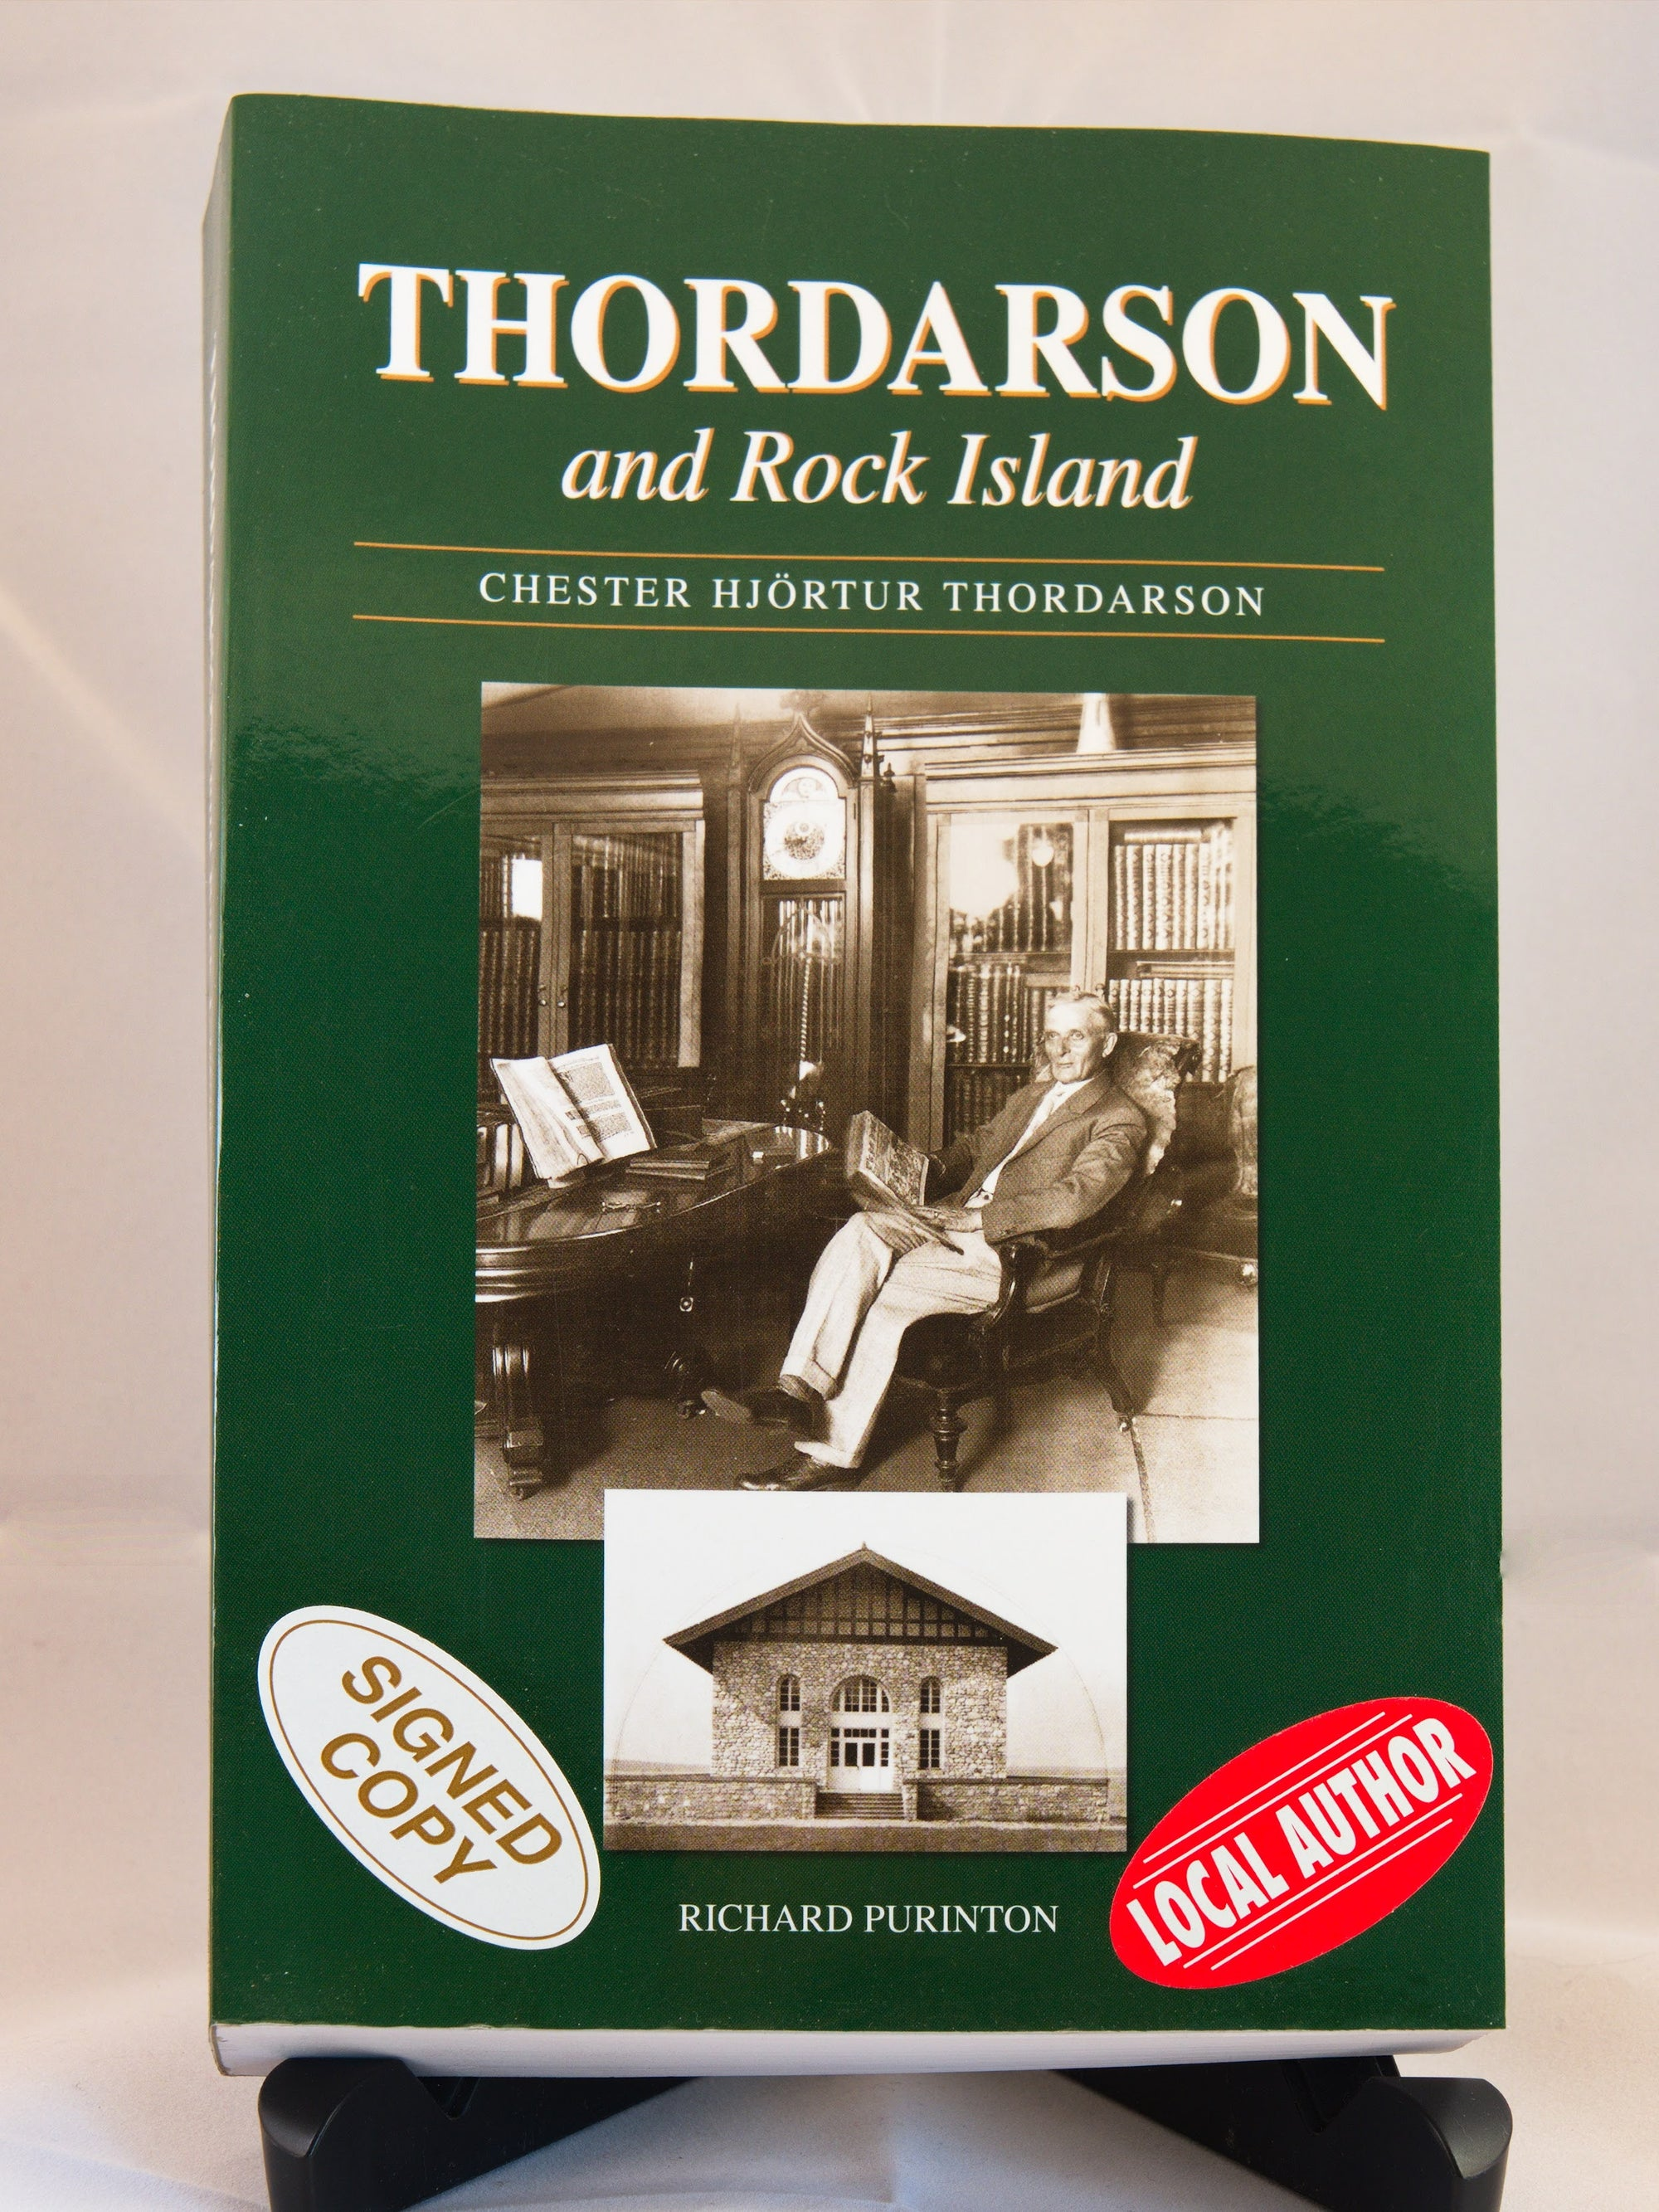 Thordarson and Rock Island by author Richard Purinton - signed copy (IS)